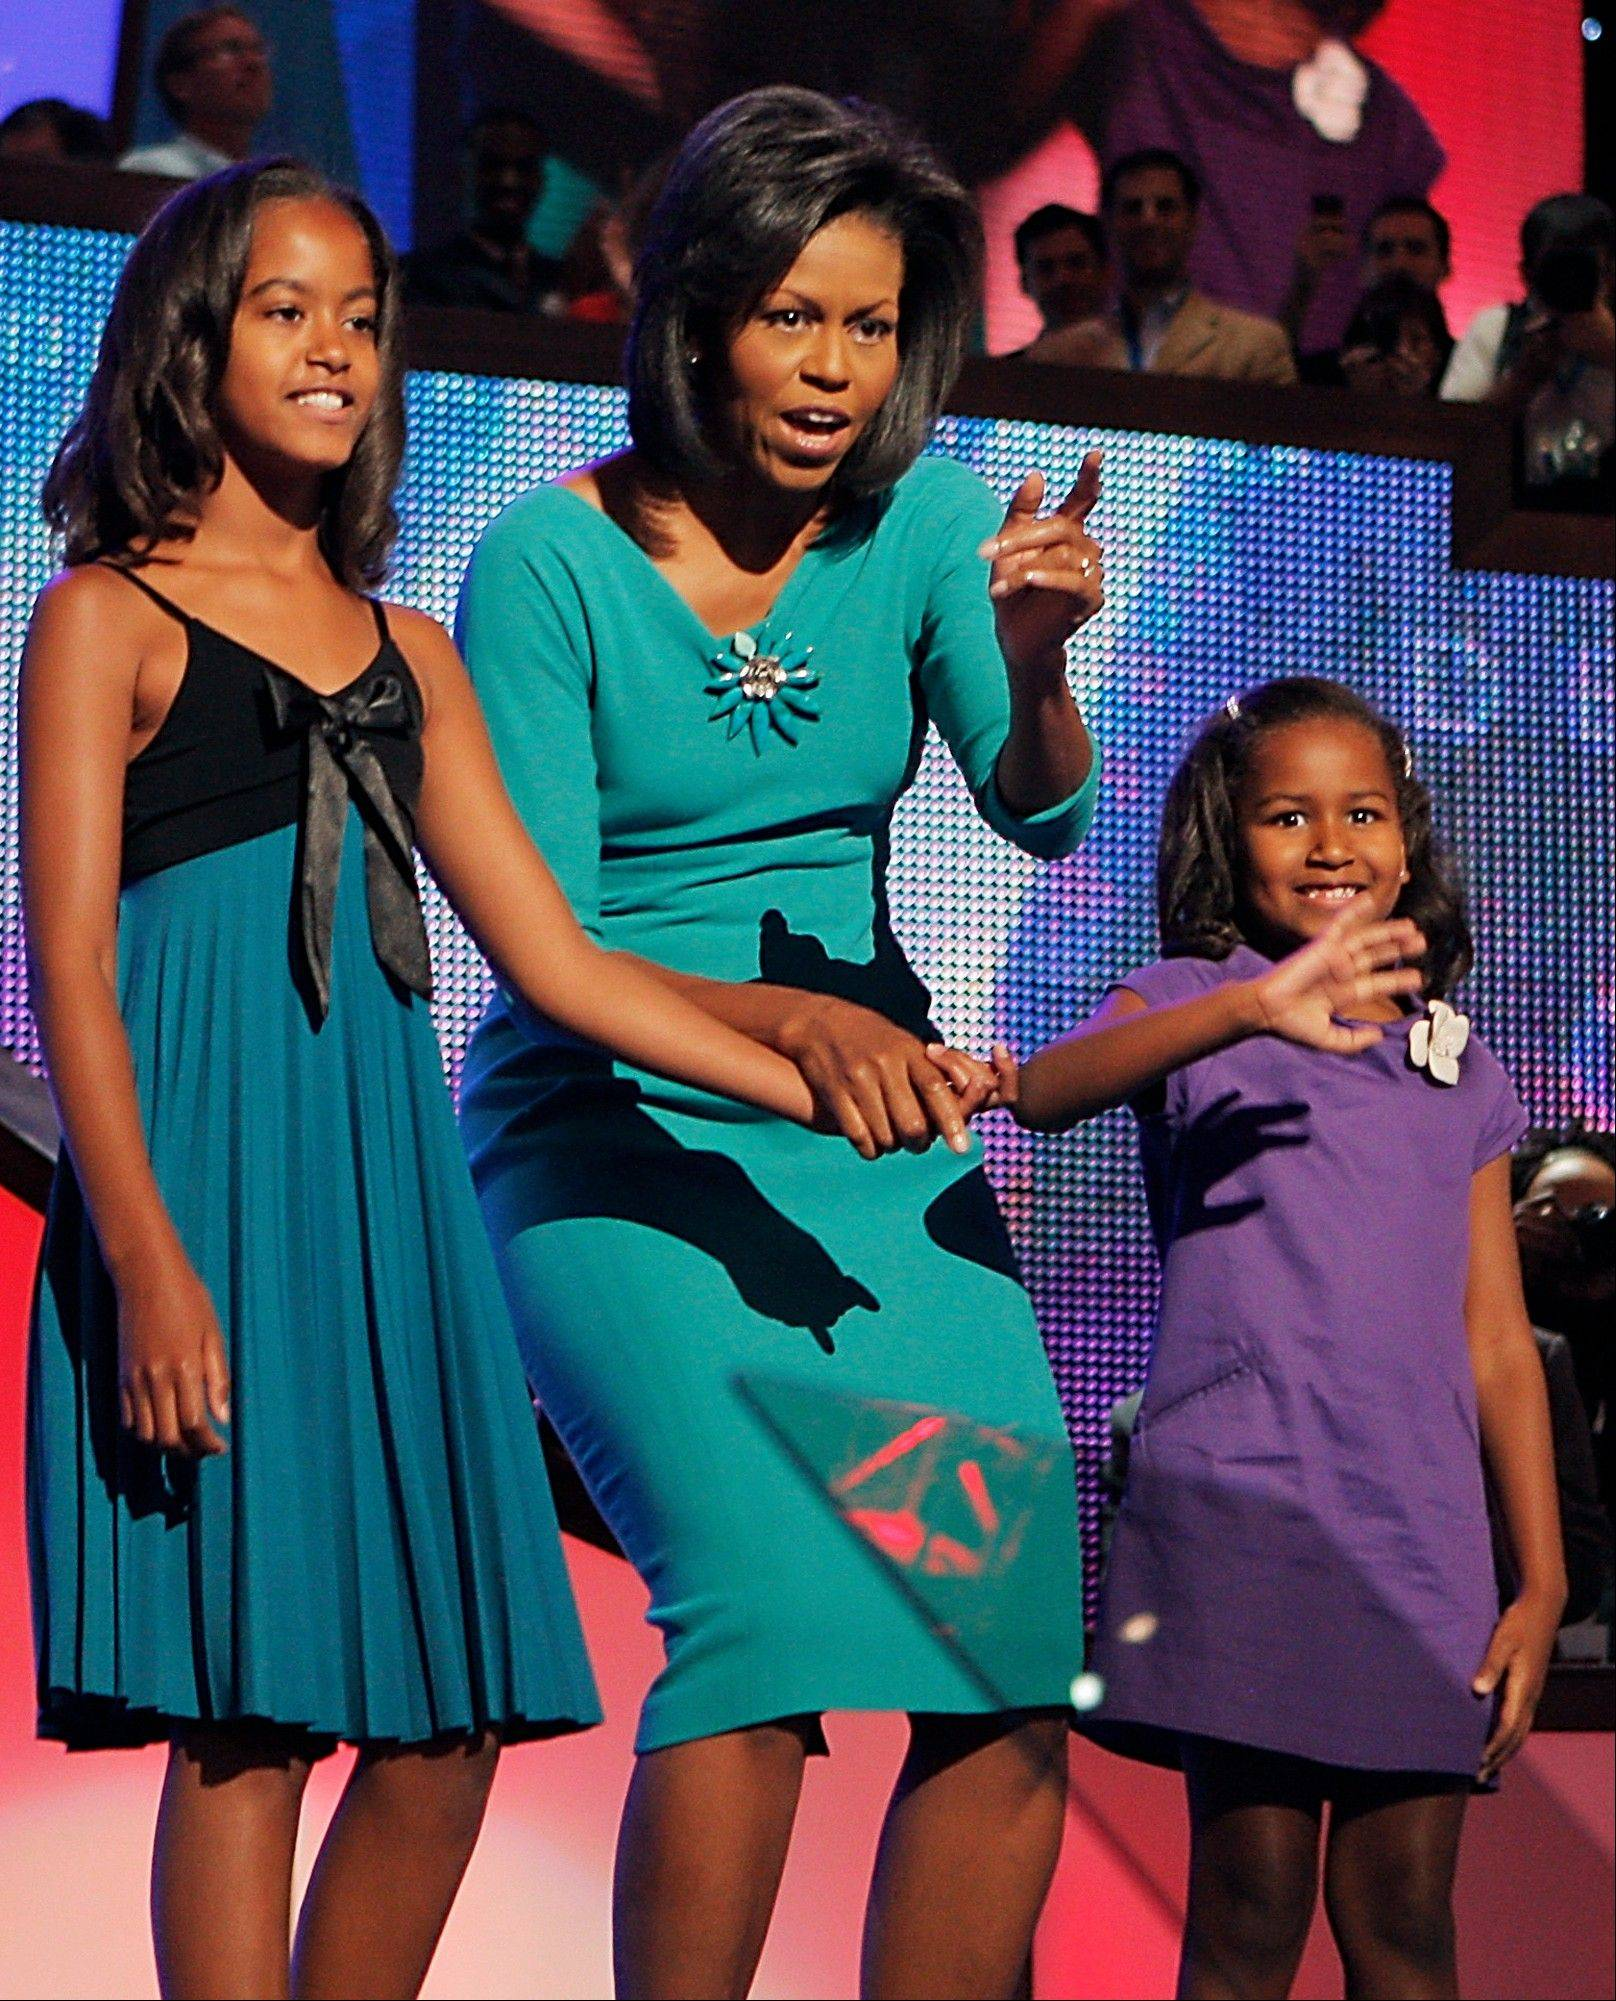 In this Aug. 25, 2008, file photo, Michelle Obama, wife of then-Democratic presidential candidate, Sen. Barack Obama, D-Ill., and daughters Malia, left, 10, and Sasha, right, 7, wave to the audience the Democratic National Convention in Denver. She is 5-foot-11, and she is world-famous. Sometimes she inspires awe in her admirers. She has been accused of being the angry type. So when Michelle Obama meets people, she likes to bring things down to earth with a hug.